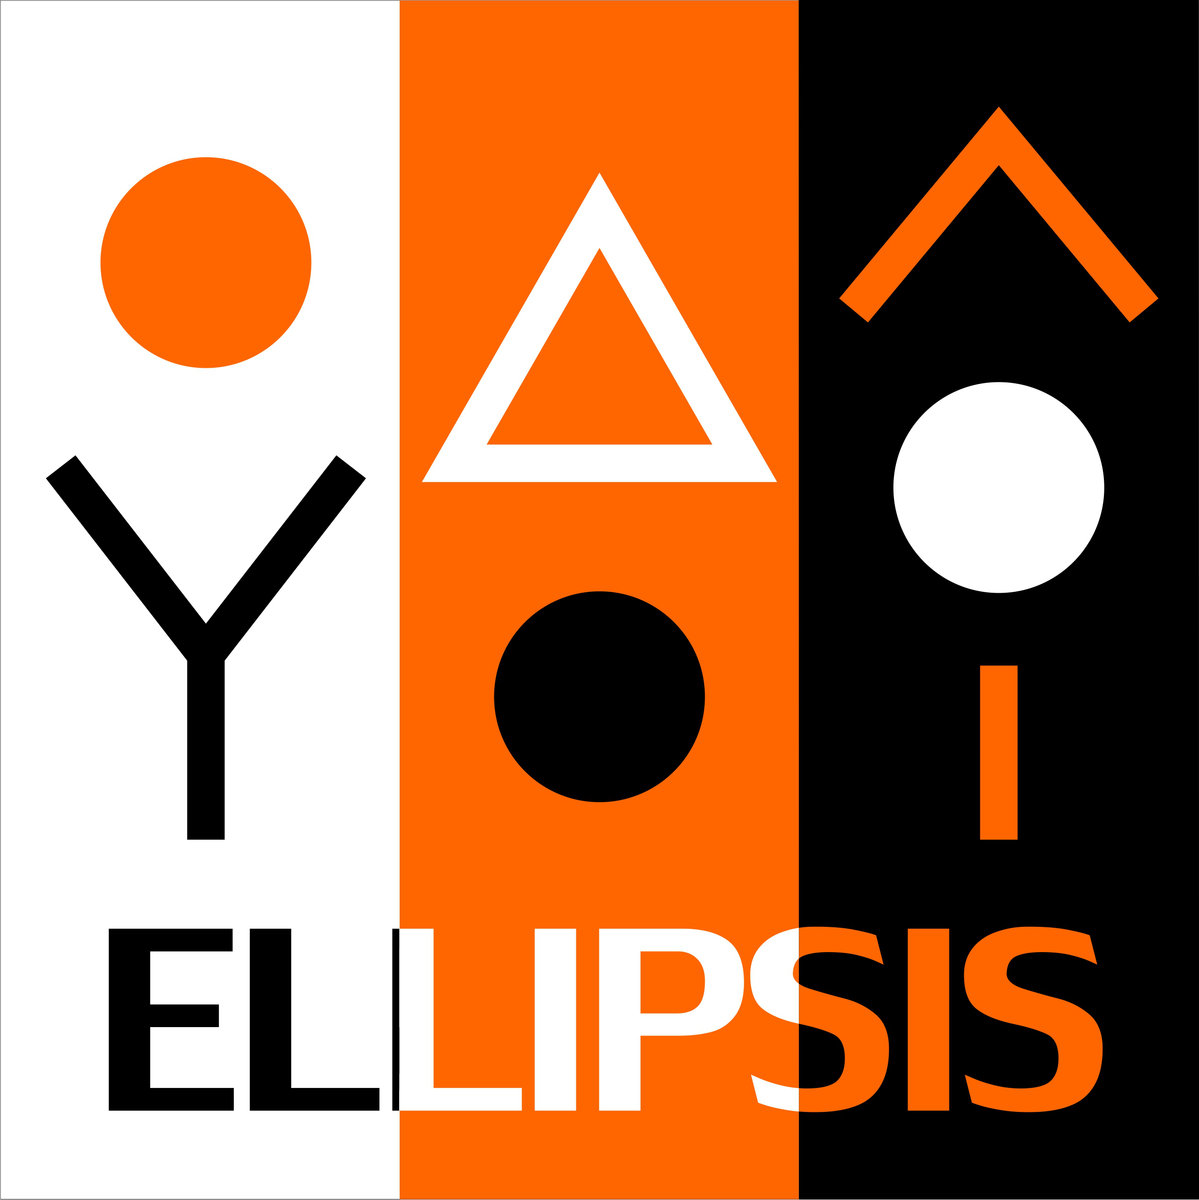 Olga Scotland - The Crew Mourns The Death Of Their Captain @ 'Ellipsis III - Pre-Release Sampler' album (electronic, ambient)